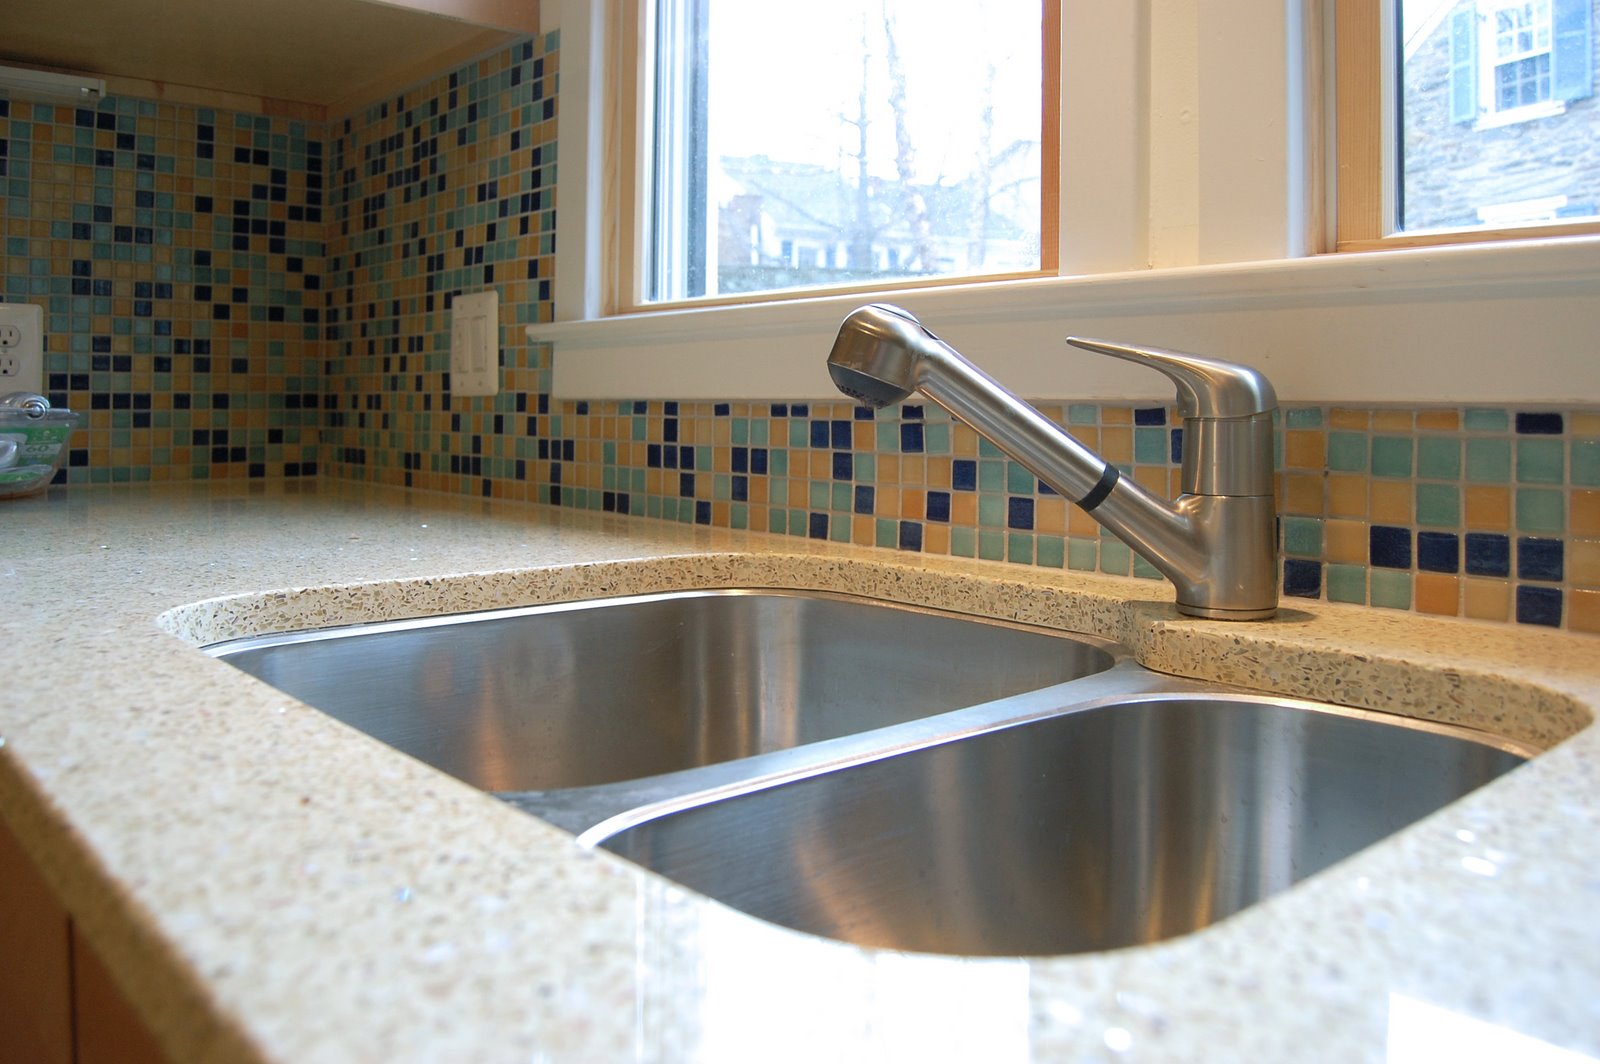 Safest Countertops Recycled Glass Environmental Material Eco Friendly